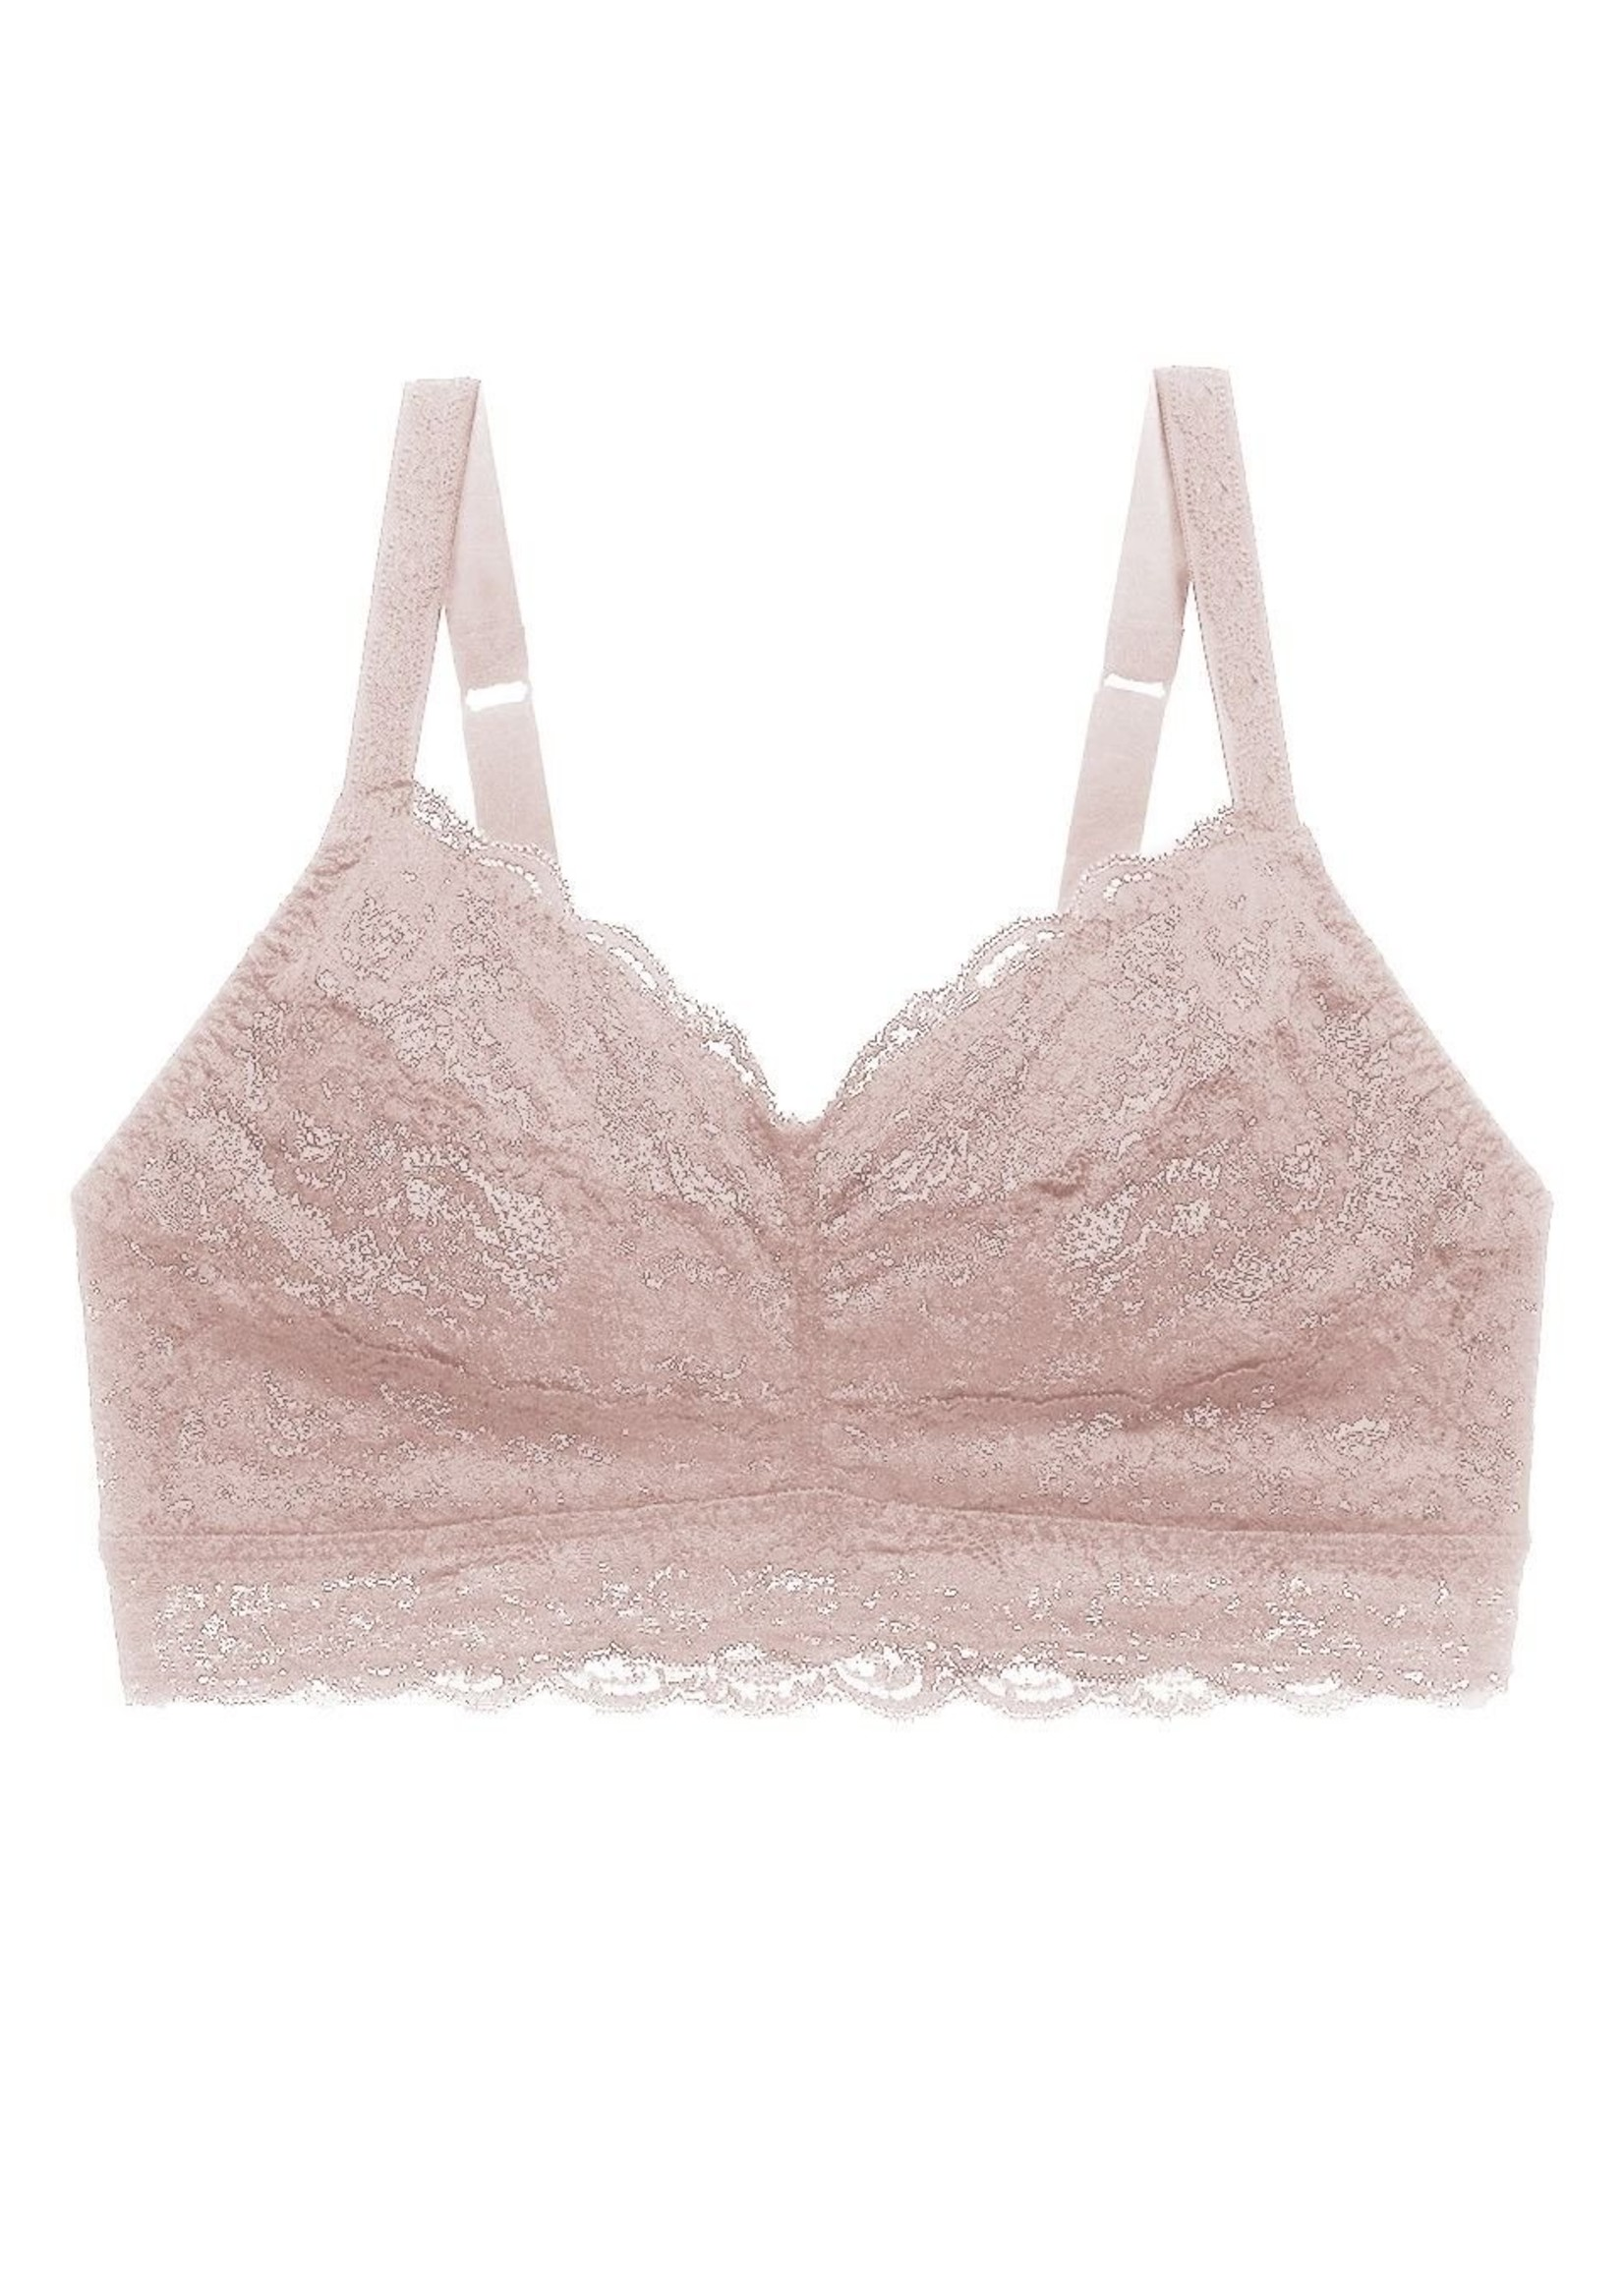 Cosabella Never Say Never Ultra Curvy Sweetie Bralette (G-H)